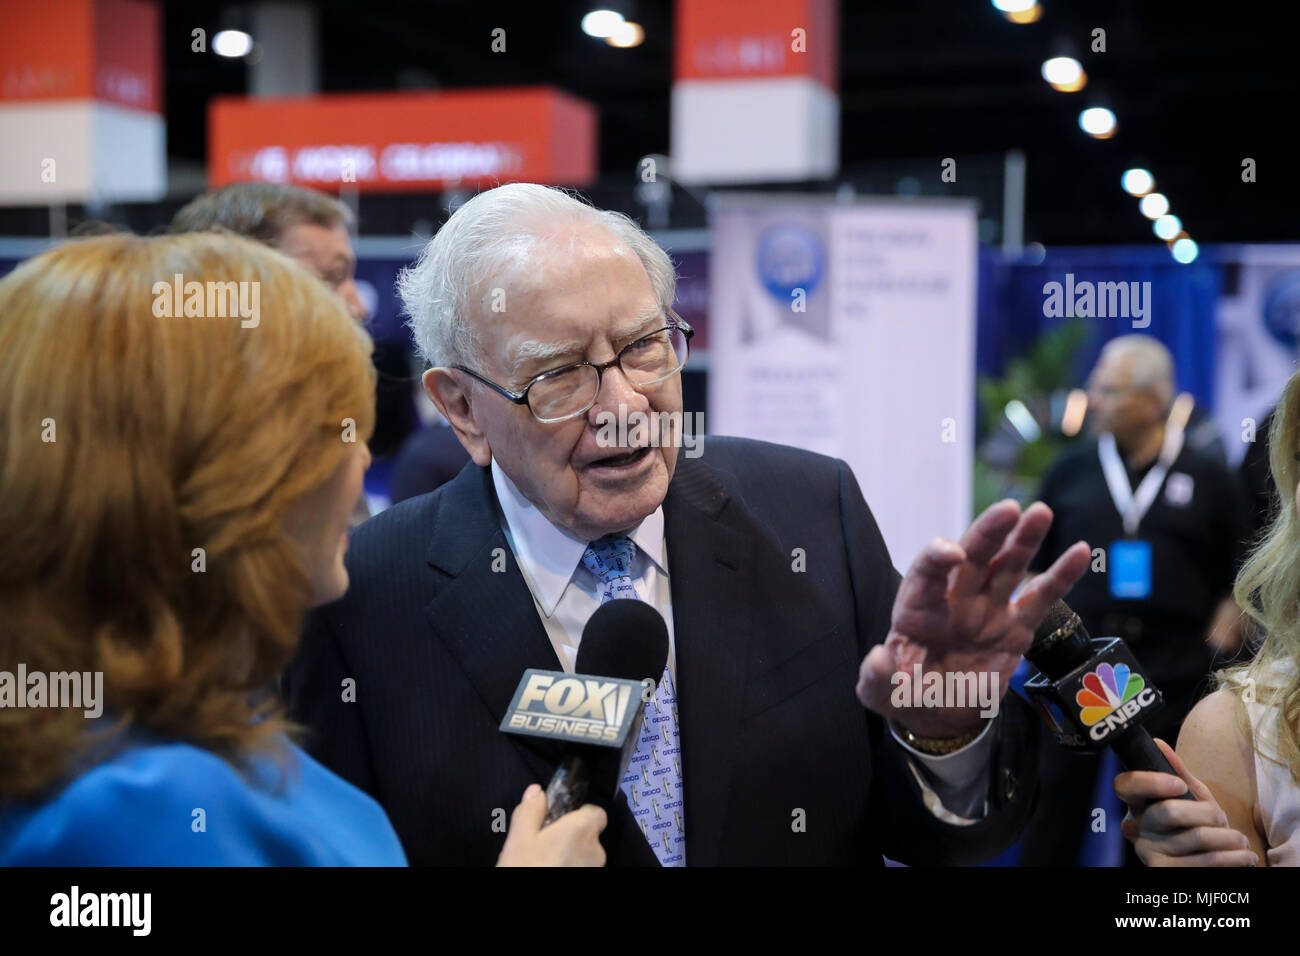 Omaha, USA. 5th May, 2018. U.S. billionaire investor Warren Buffett (C), chairman and CEO of Berkshire Hathaway, is interviewed before the Berkshire Hathaway's annual shareholders meeting in Omaha, Nebraska, the United States, on May 5, 2018. Berkshire Hathaway held its 2018 shareholders meeting on Saturday, attended by tens of thousands of people from all over the world. Credit: Wang Ying/Xinhua/Alamy Live News - Stock Image